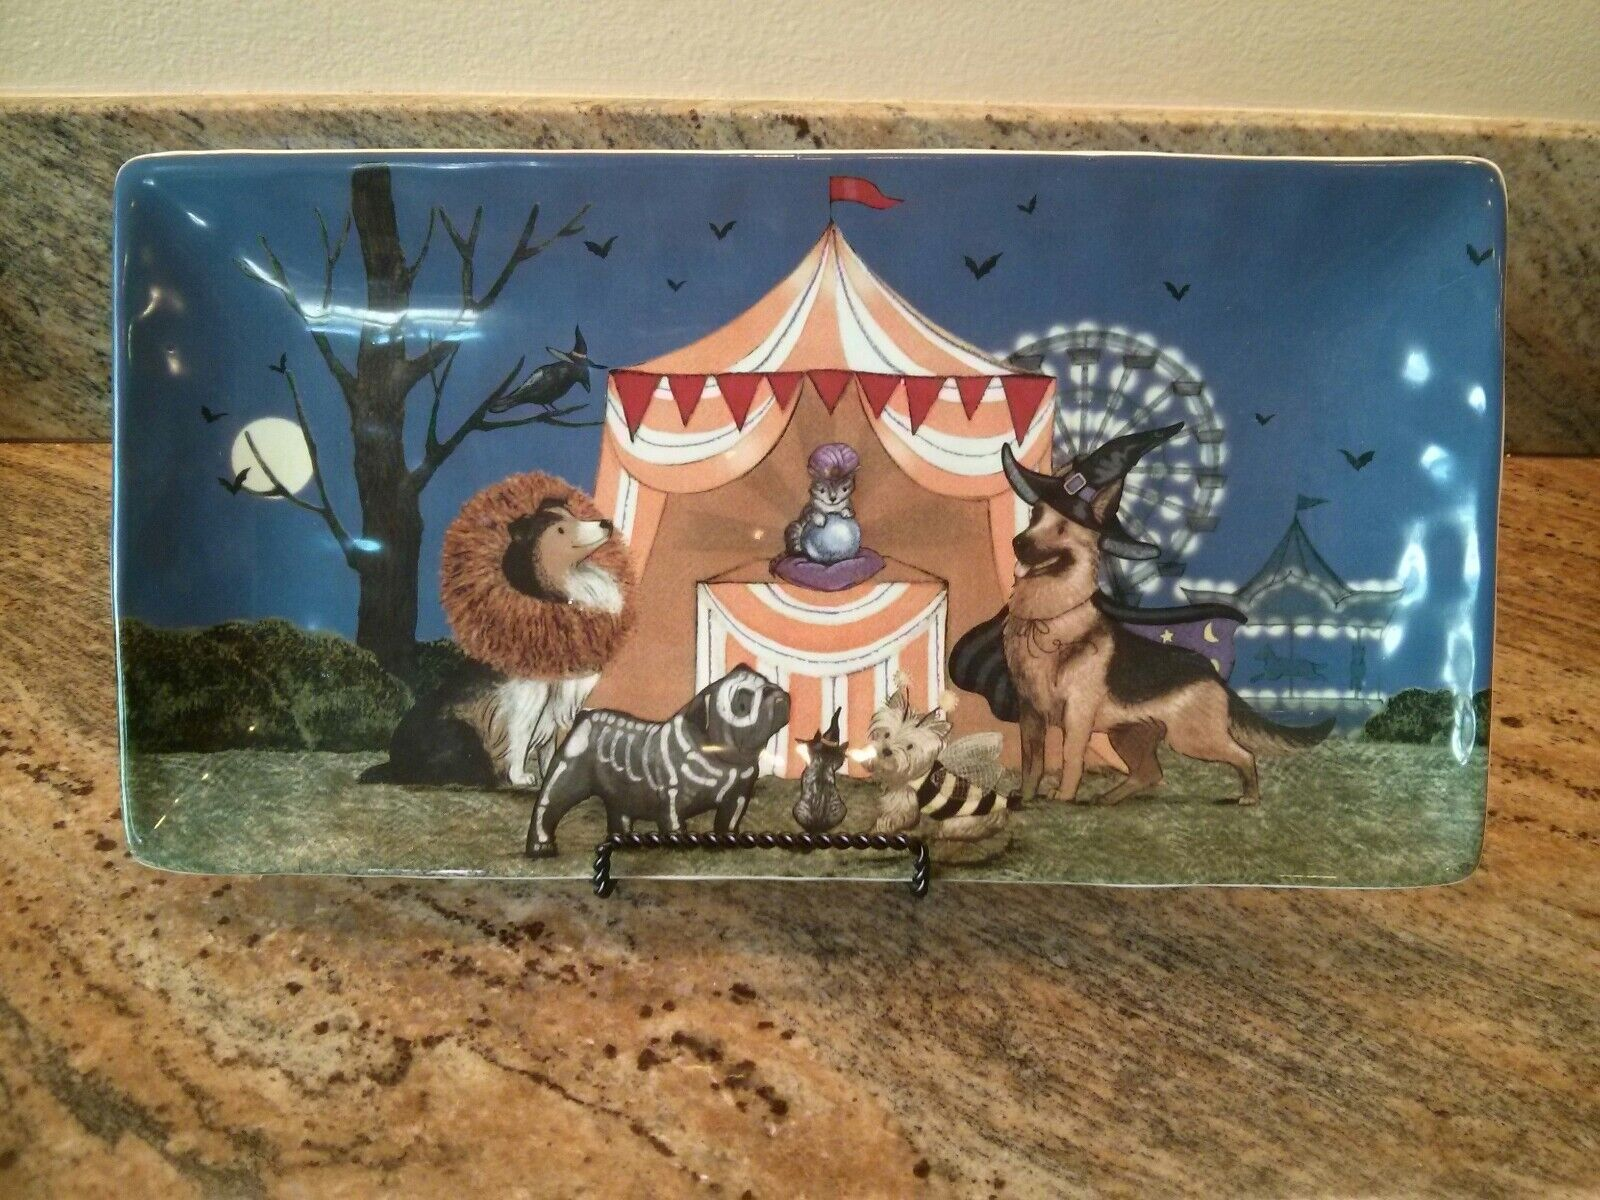 Pier 1 Halloween Park Avenue Puppies Dogs Serving Rectangular Platter New Rare